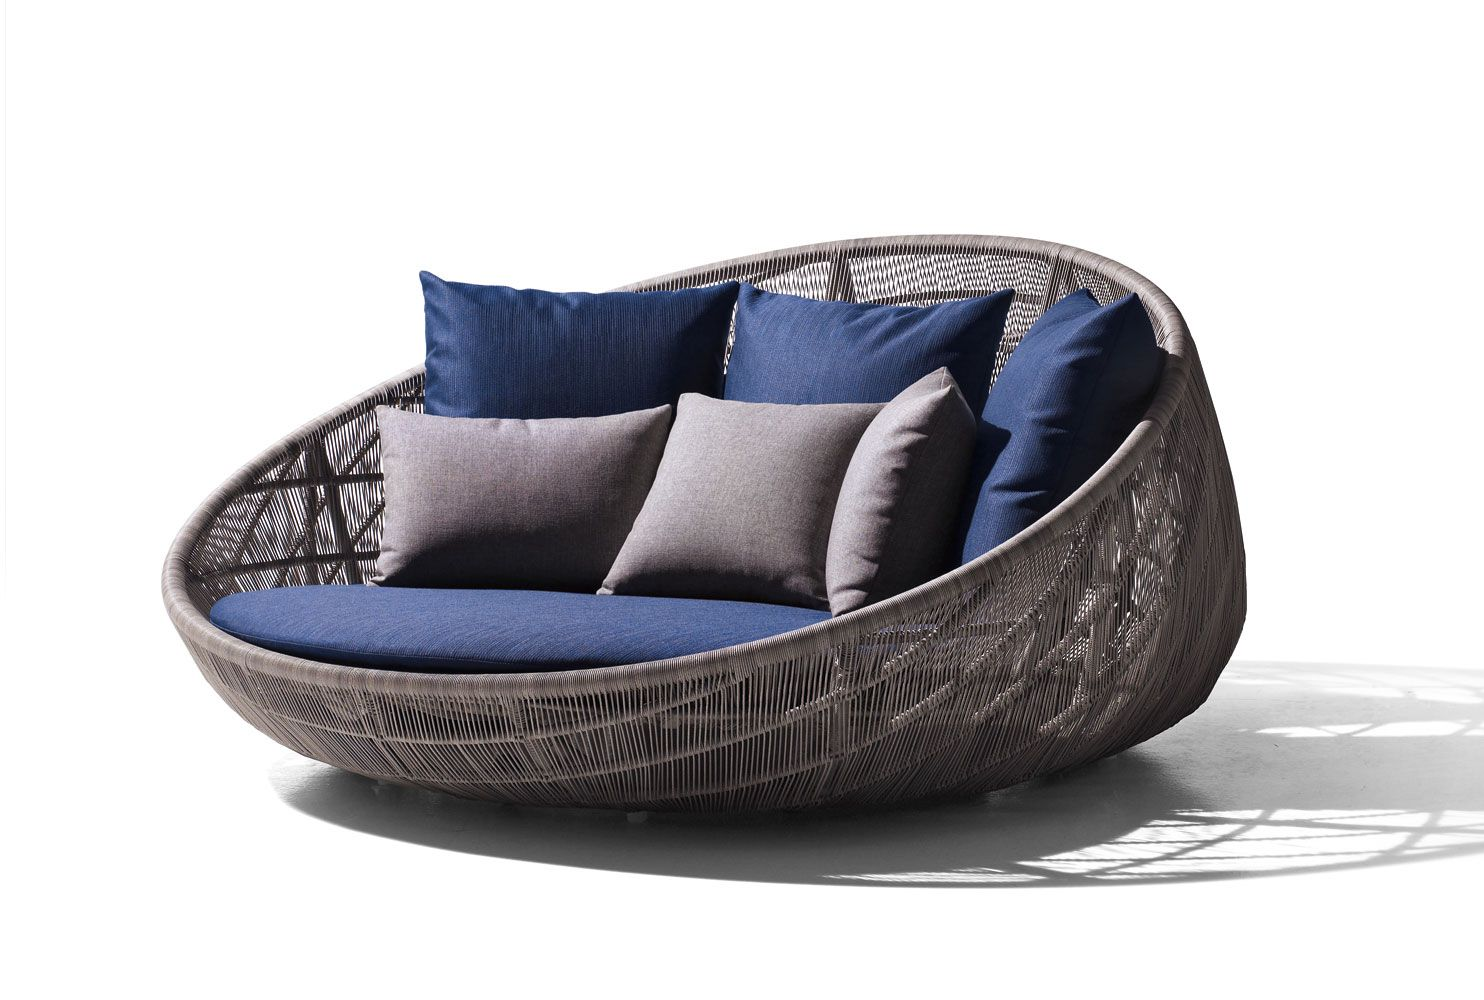 Canasta 13 Collection B B Italia Outdoor This Would Look Great Out By The Pool Instead Of The Traditional D Outdoor Daybed Garden Sofa Circular Armchairs